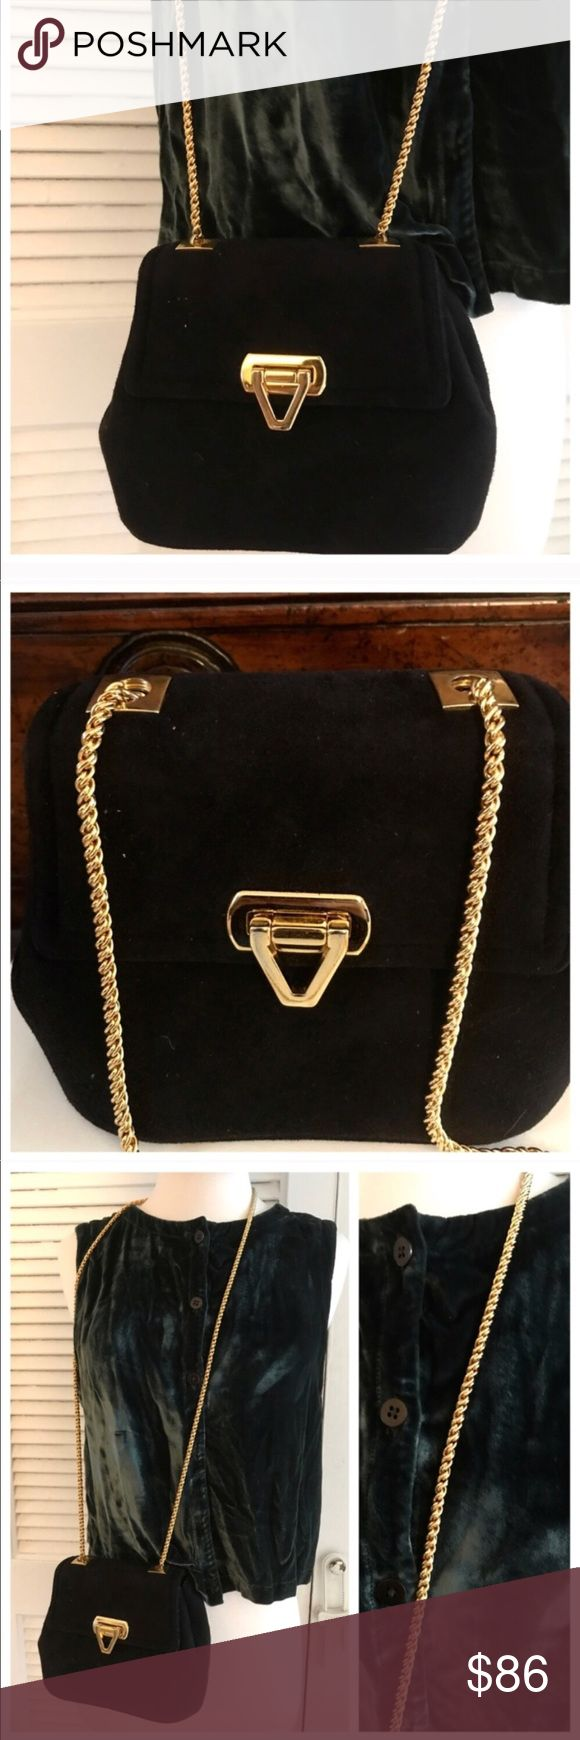 """Frenchy Of California Vintage Purse w/ Gold Chain! This bag is amazing!  Made by Frenchy of California, black with a long heavy thick gold chain.   I'm unsure of the fabric. Could be velvet, suede or something else altogether! It's beautiful whatever it is :)  In amazing condition, especially for being 60 or so years old! There's some rubbing on the base of the bag which is show.   Measurements 7-8"""" wide About 3"""" deep About 27"""" long including strap Vintage Bags"""